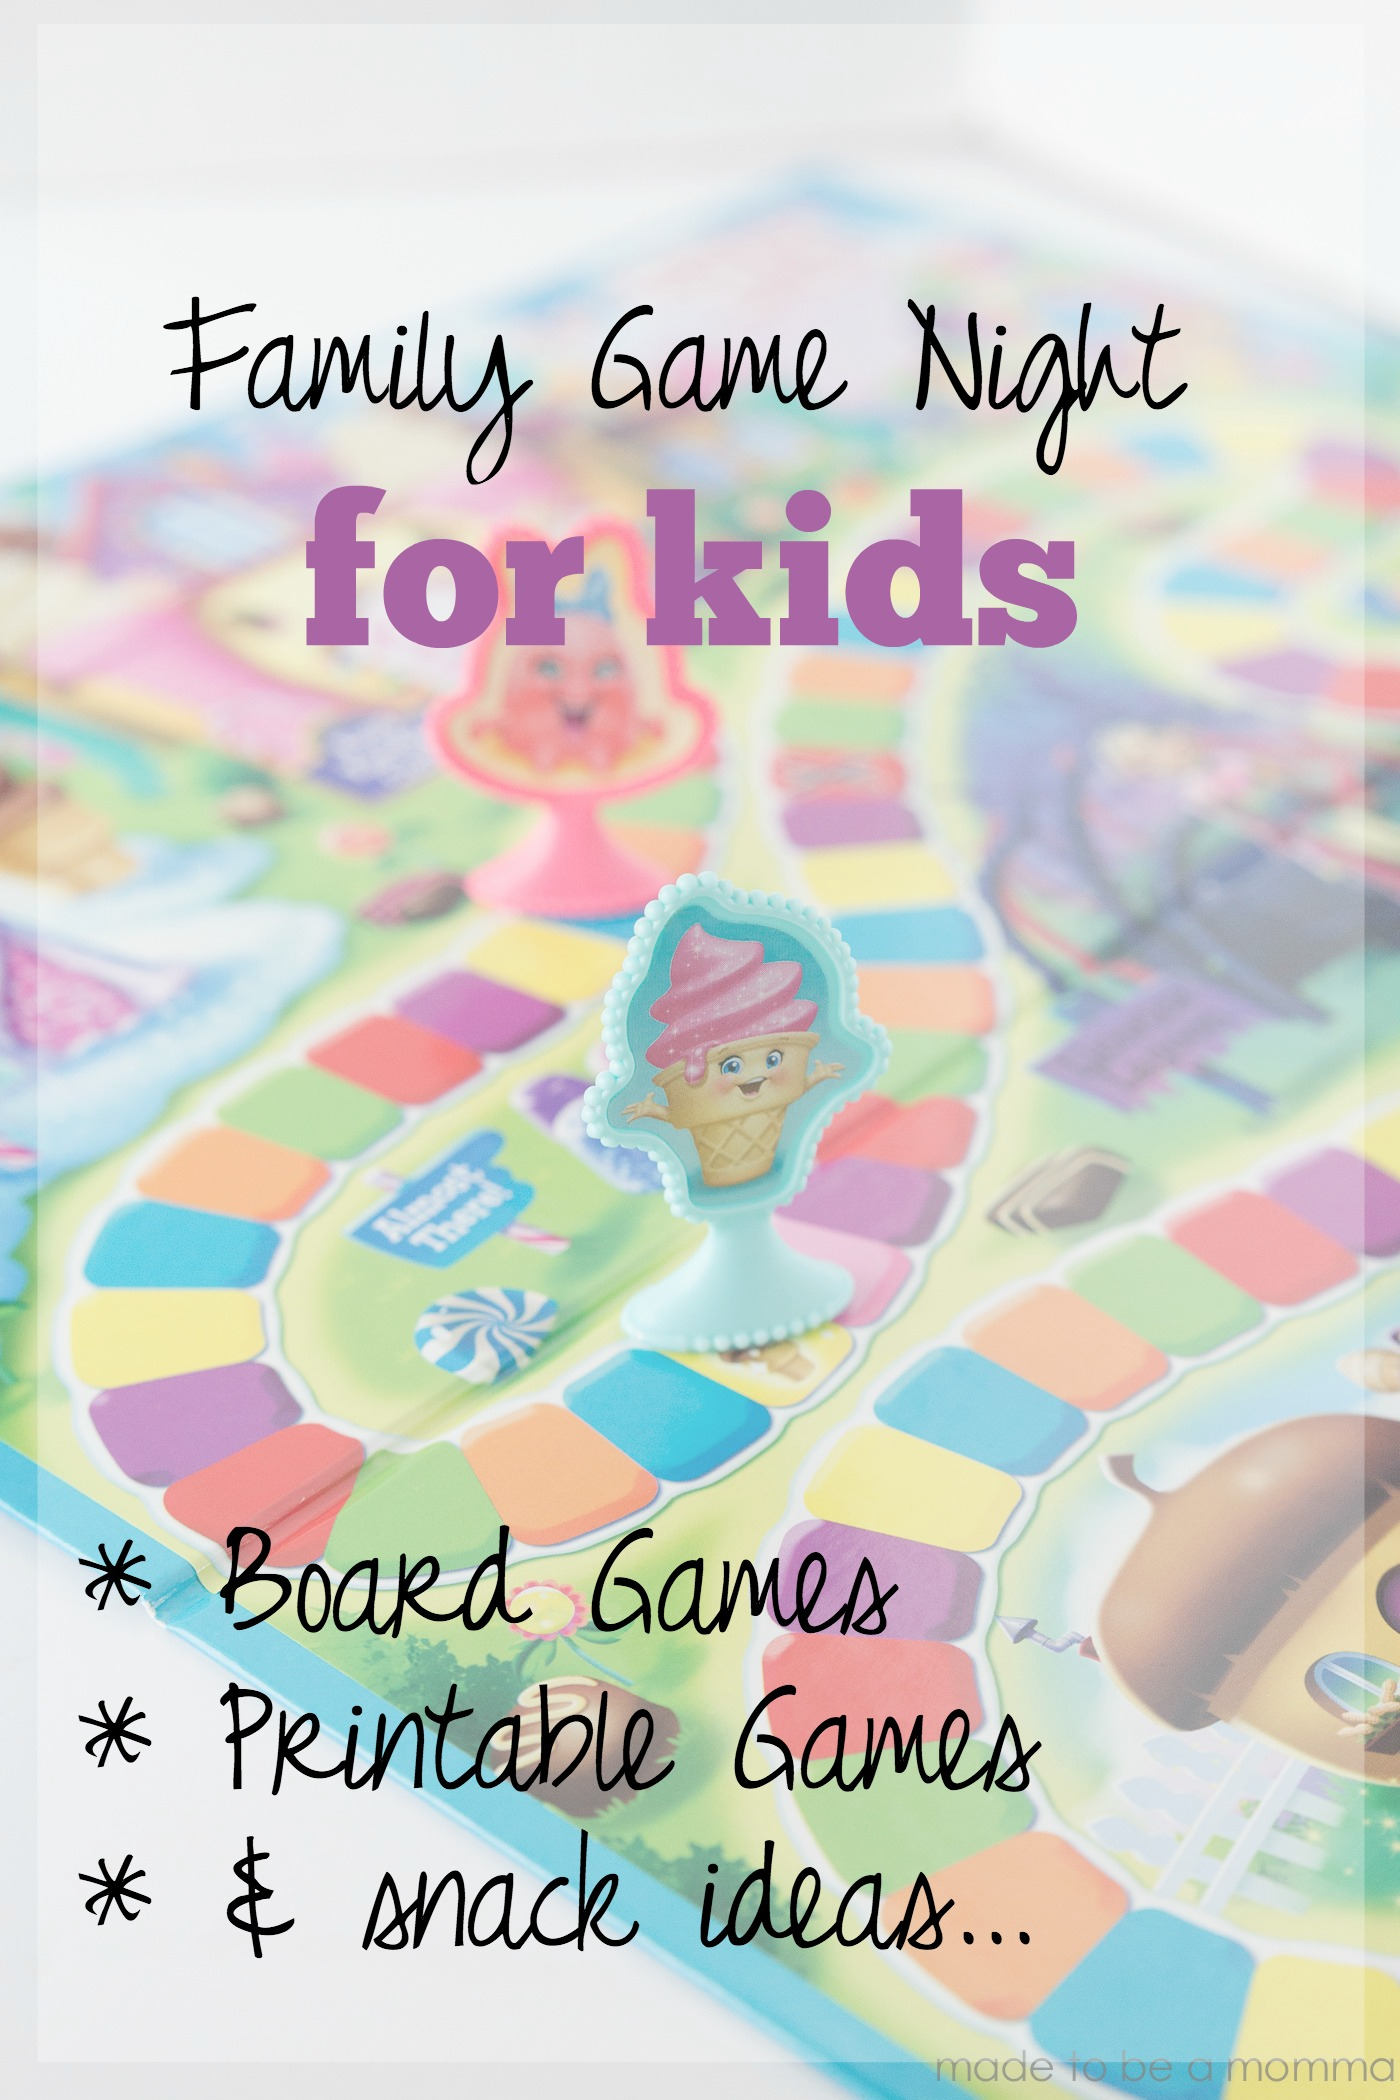 Family Game Night Ideas that are perfect for the kids!